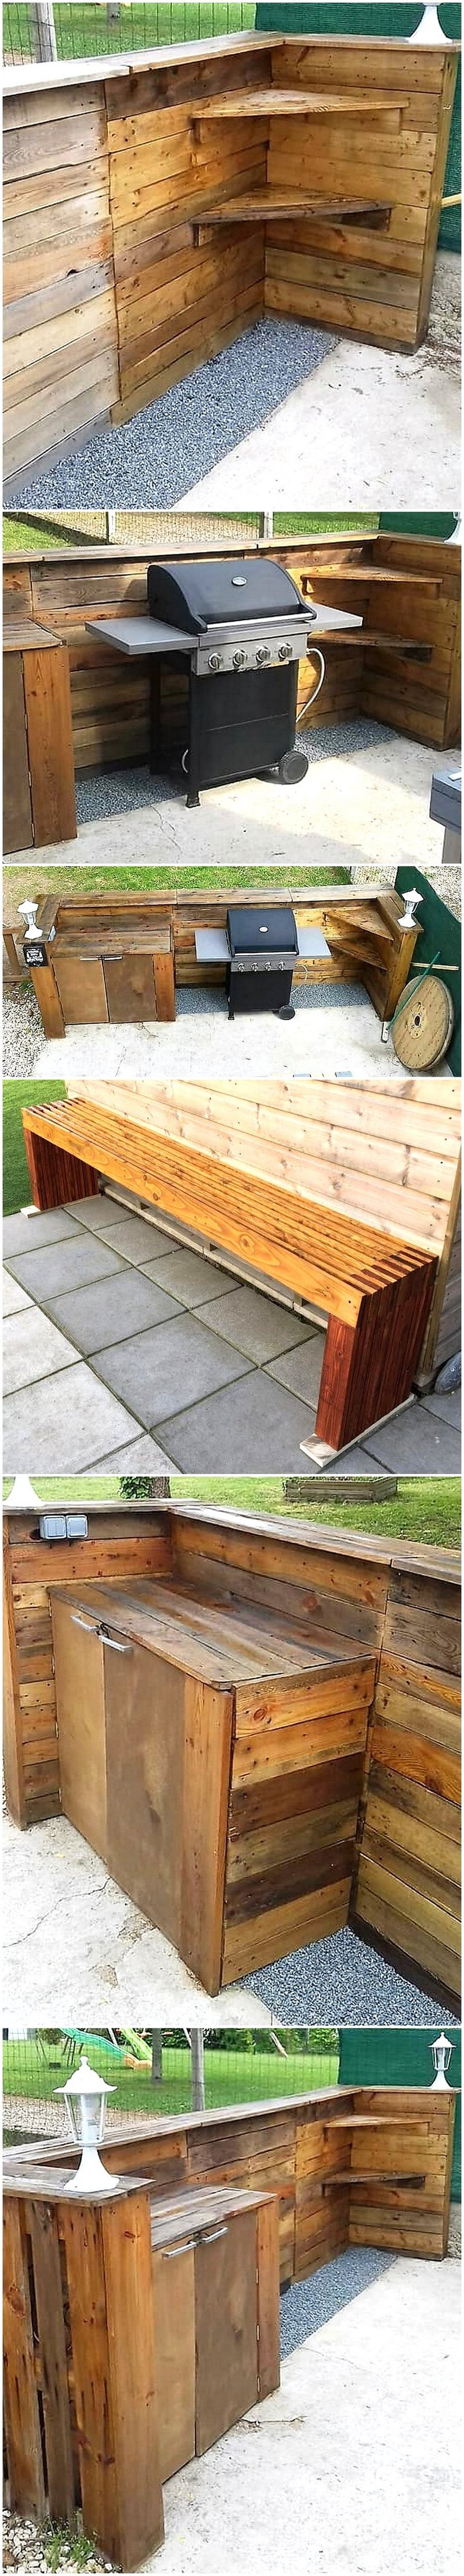 pallet outdoor summer kitchen